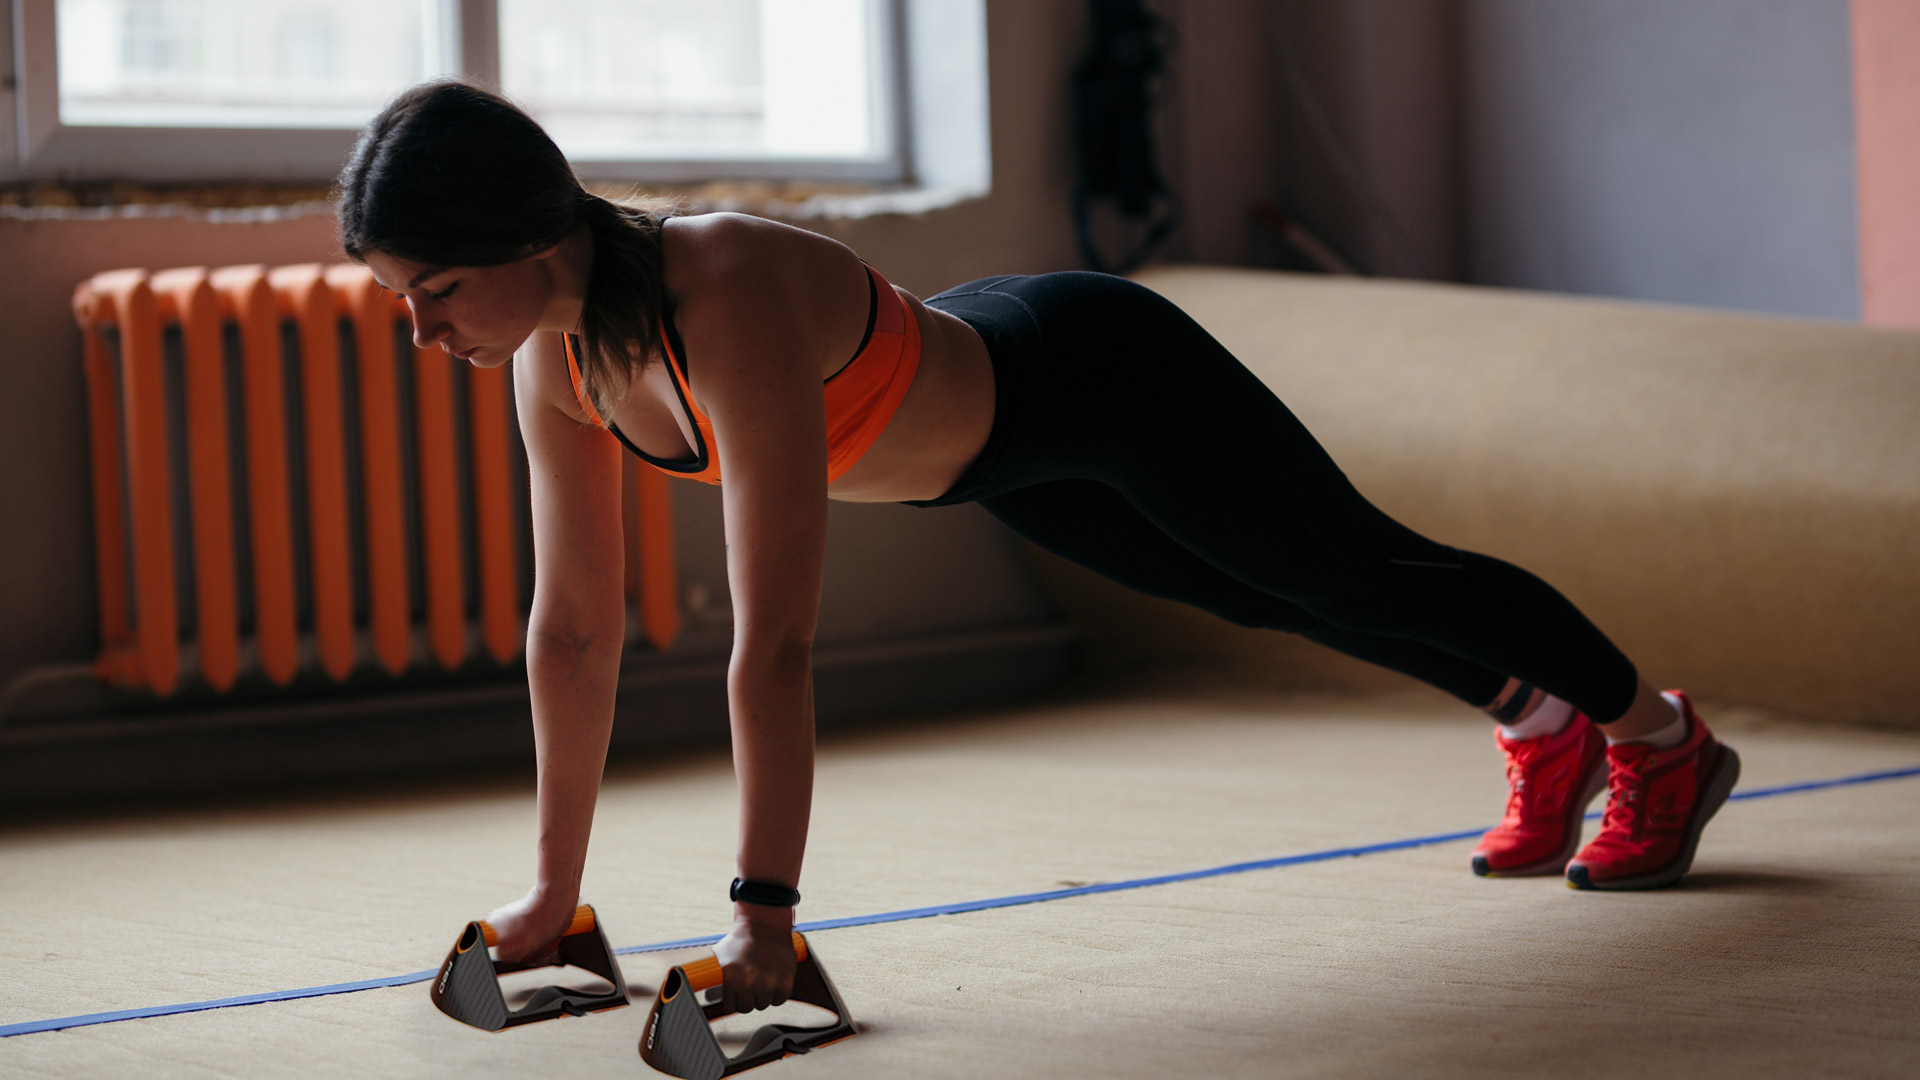 woman using push-up bars at home for fully upper-body workout